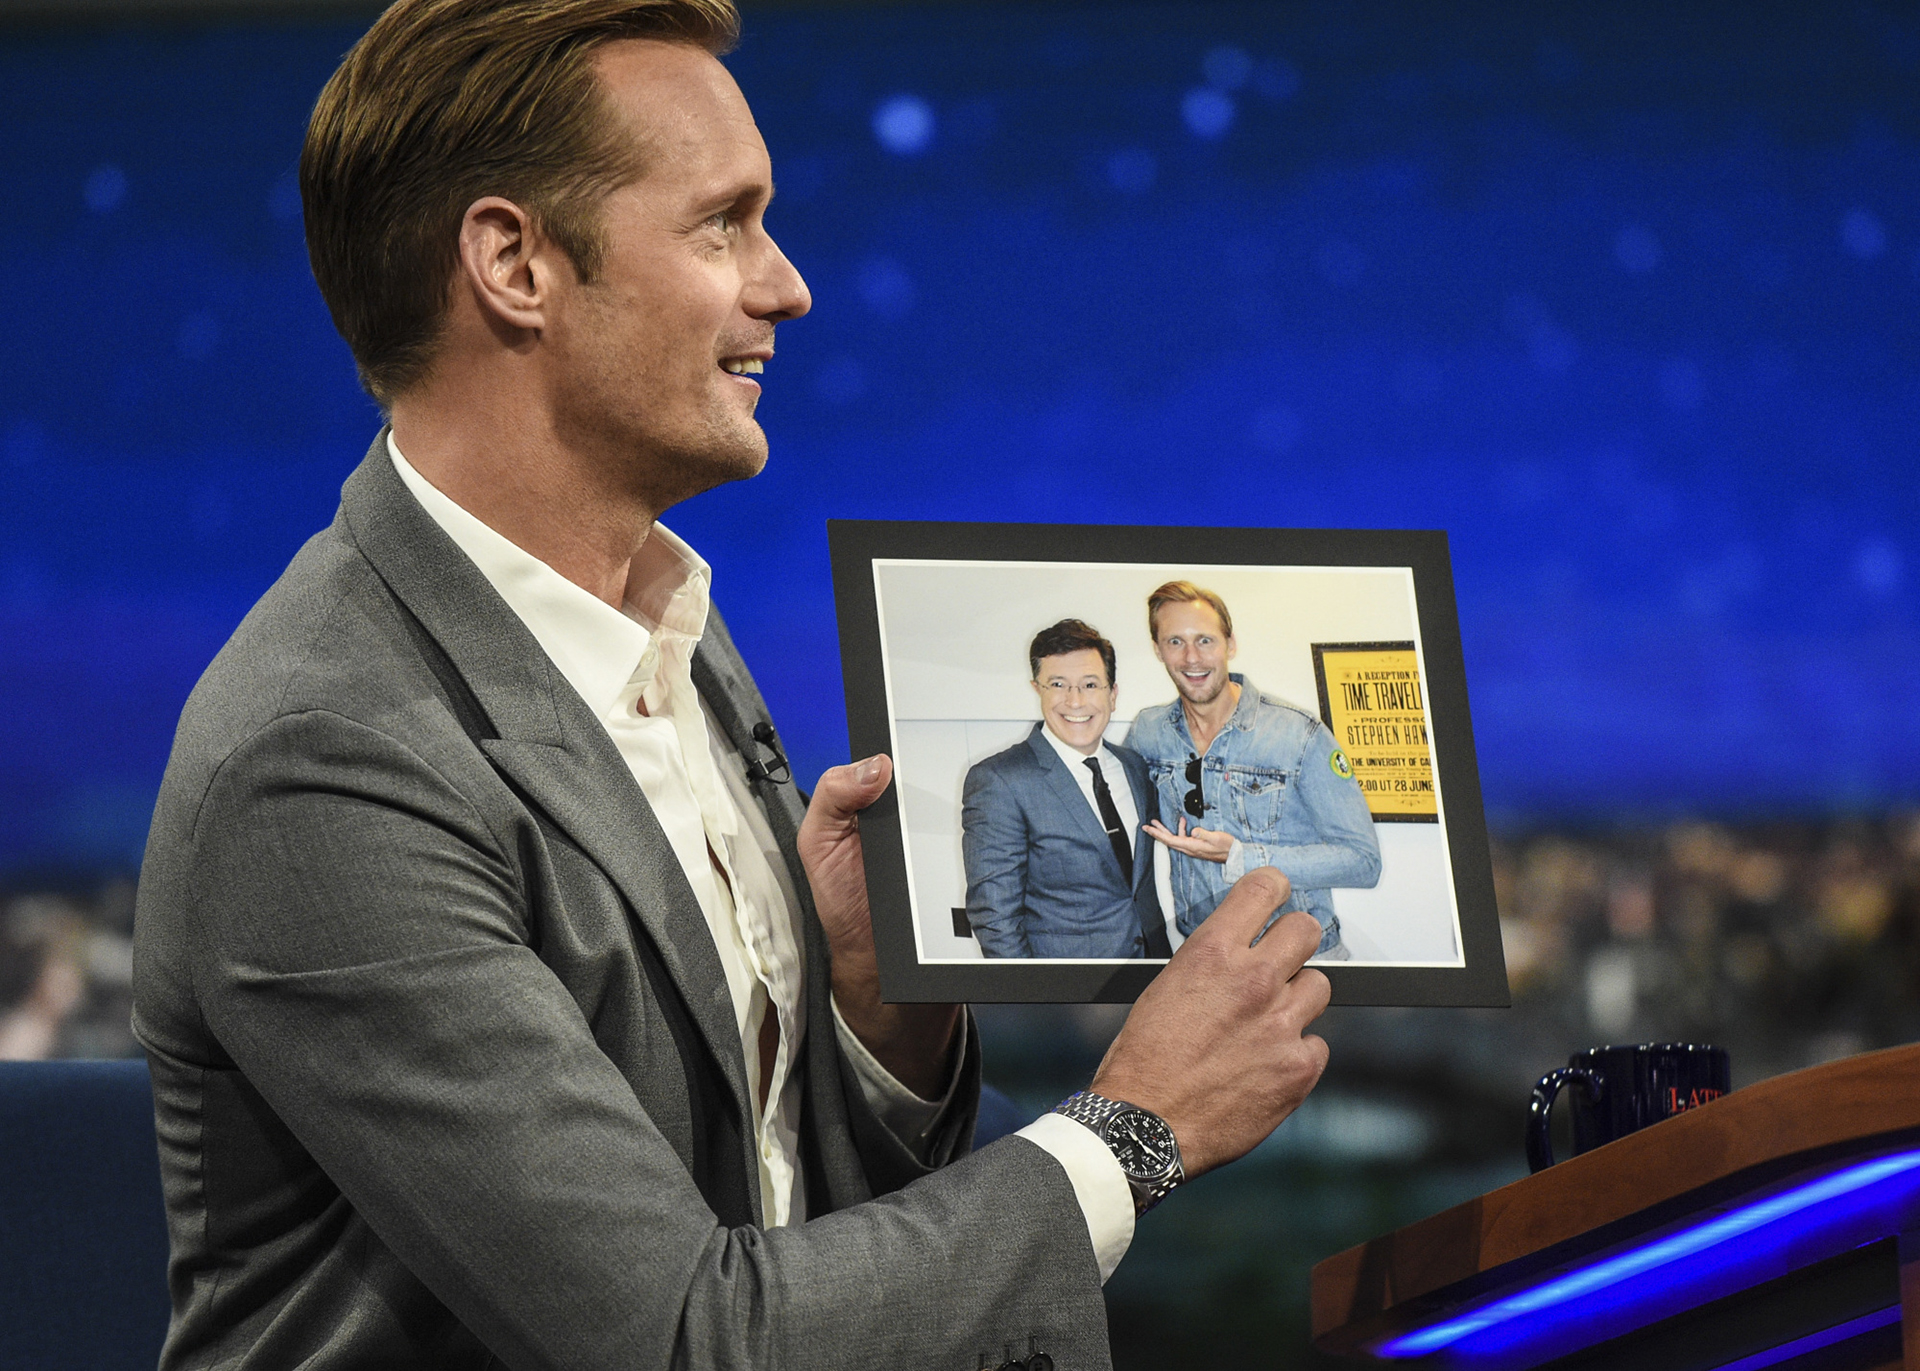 That Time Alexander Skarsgård Snuck Into The Late Show